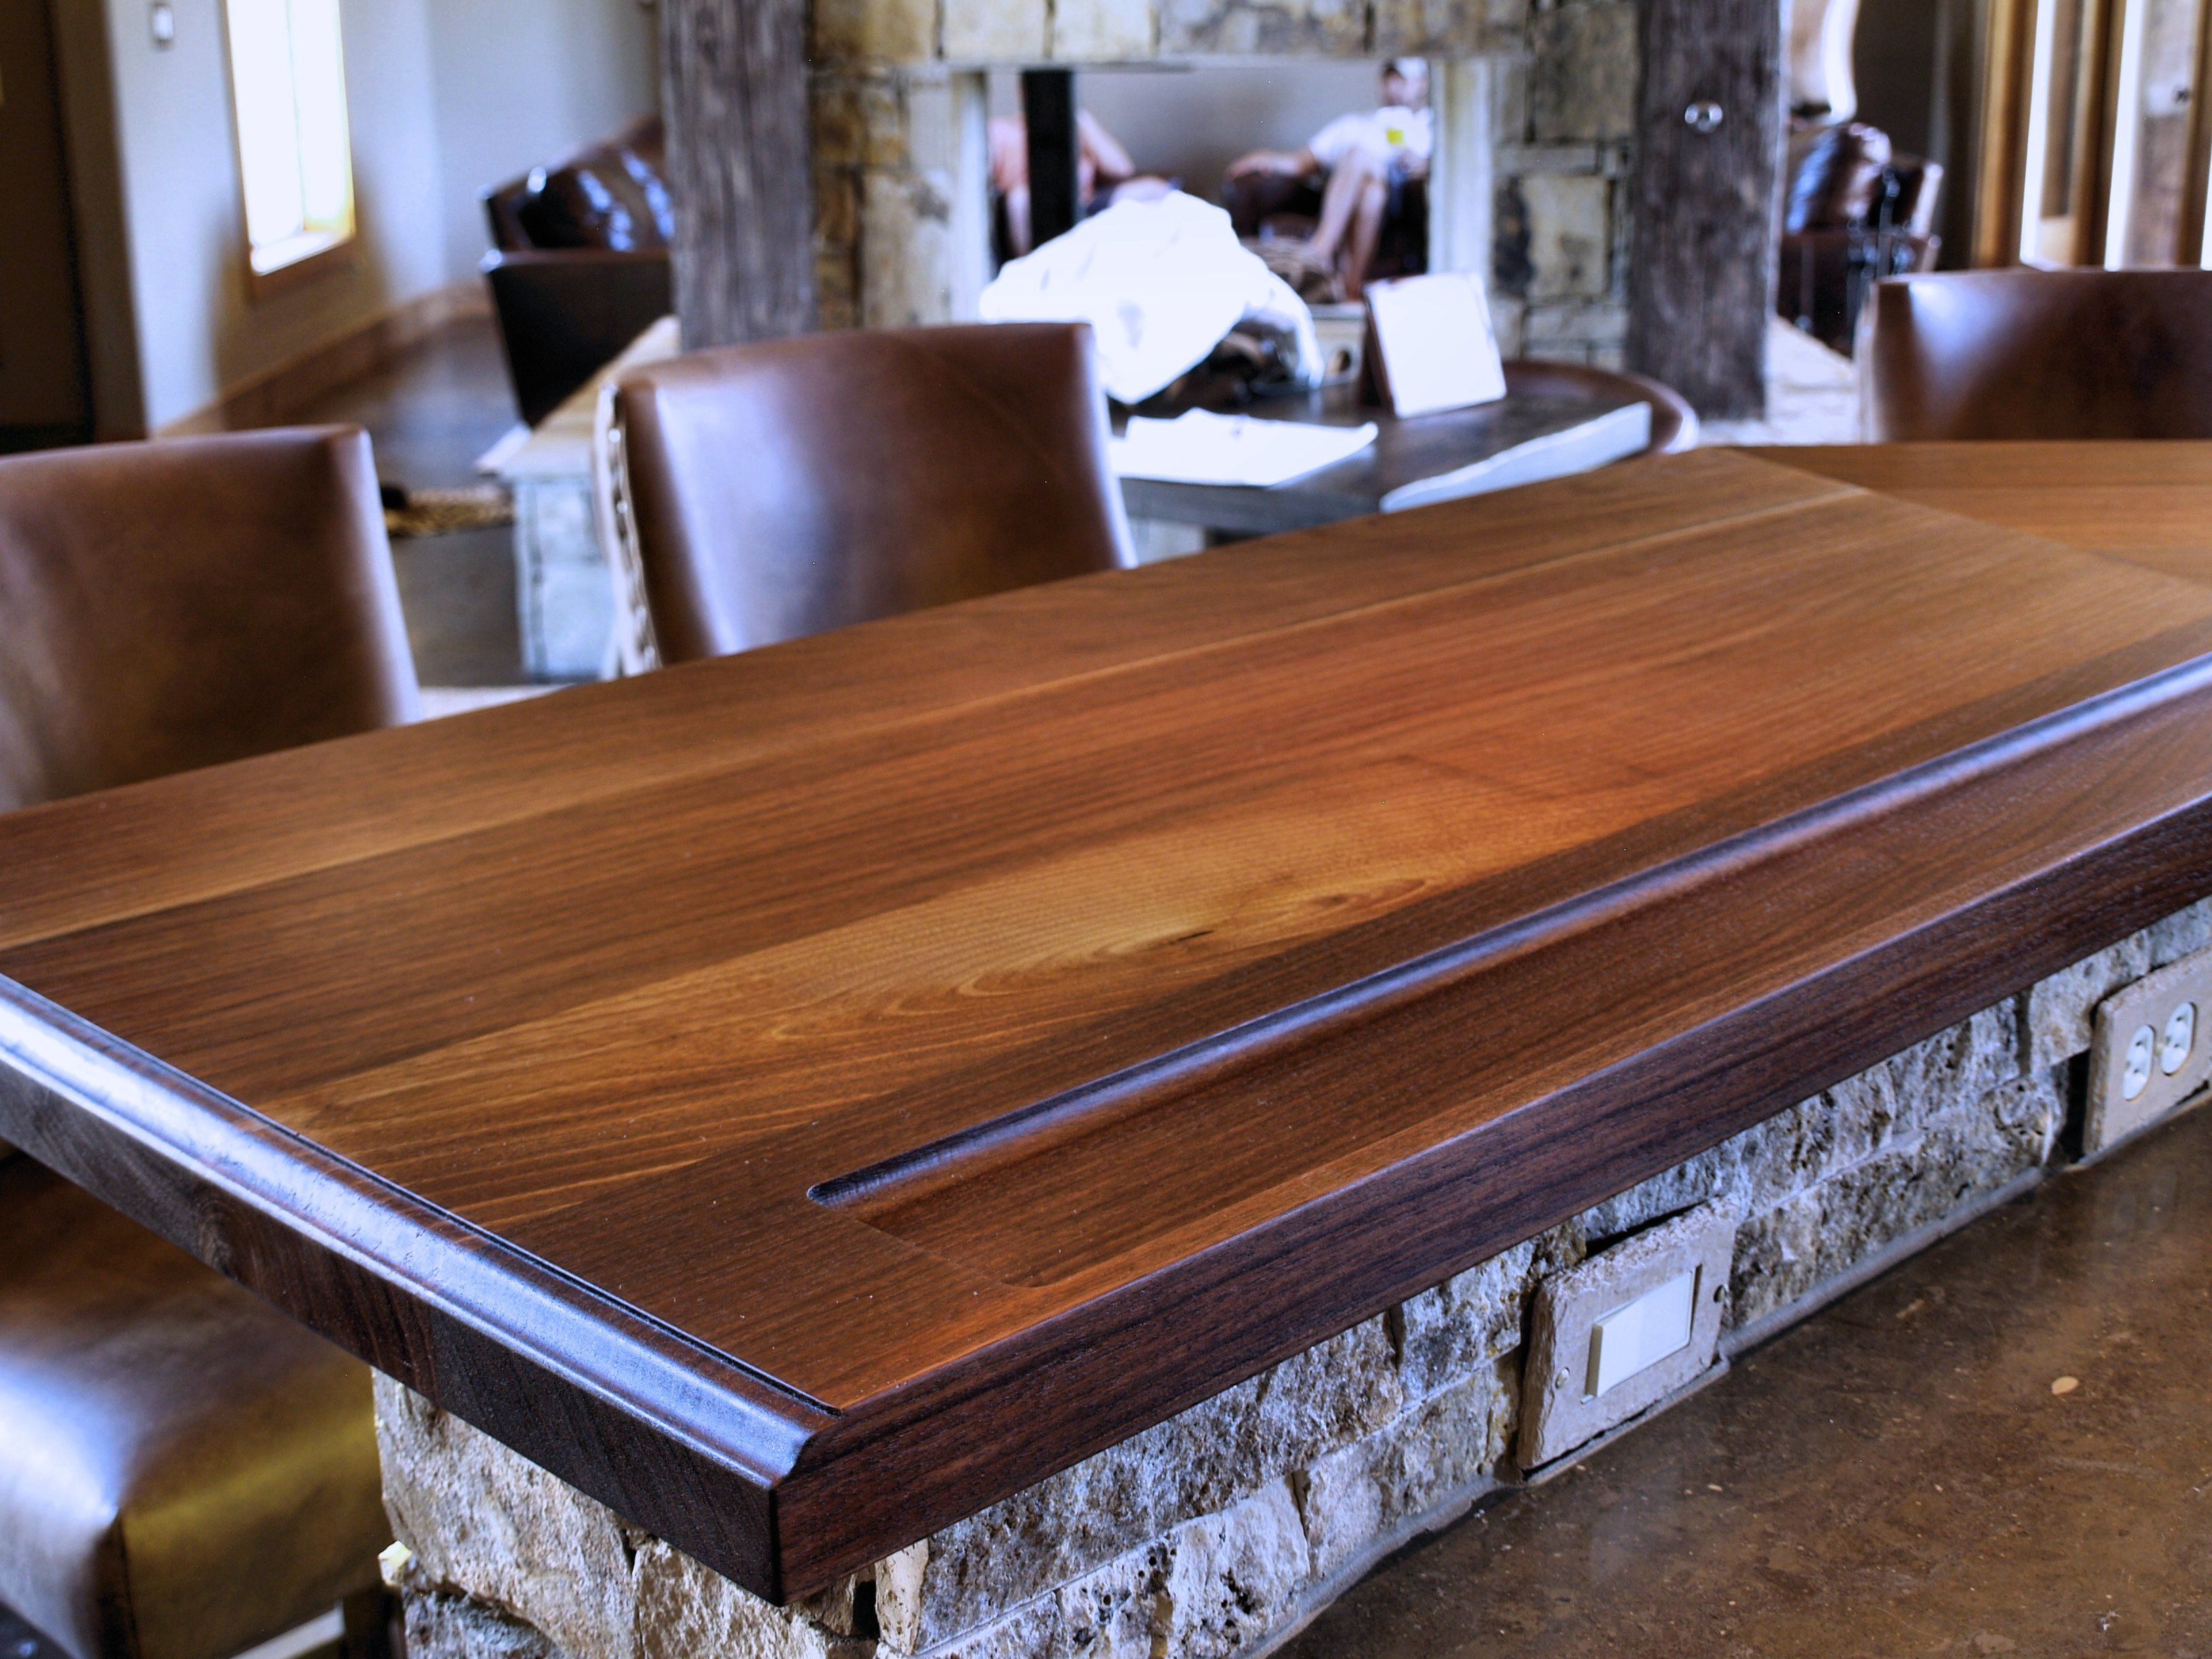 http://www.devoswoodworking.com/images/dcw/photo-gallery/wood-countertops/tx-walnut-photos/img002.jpg